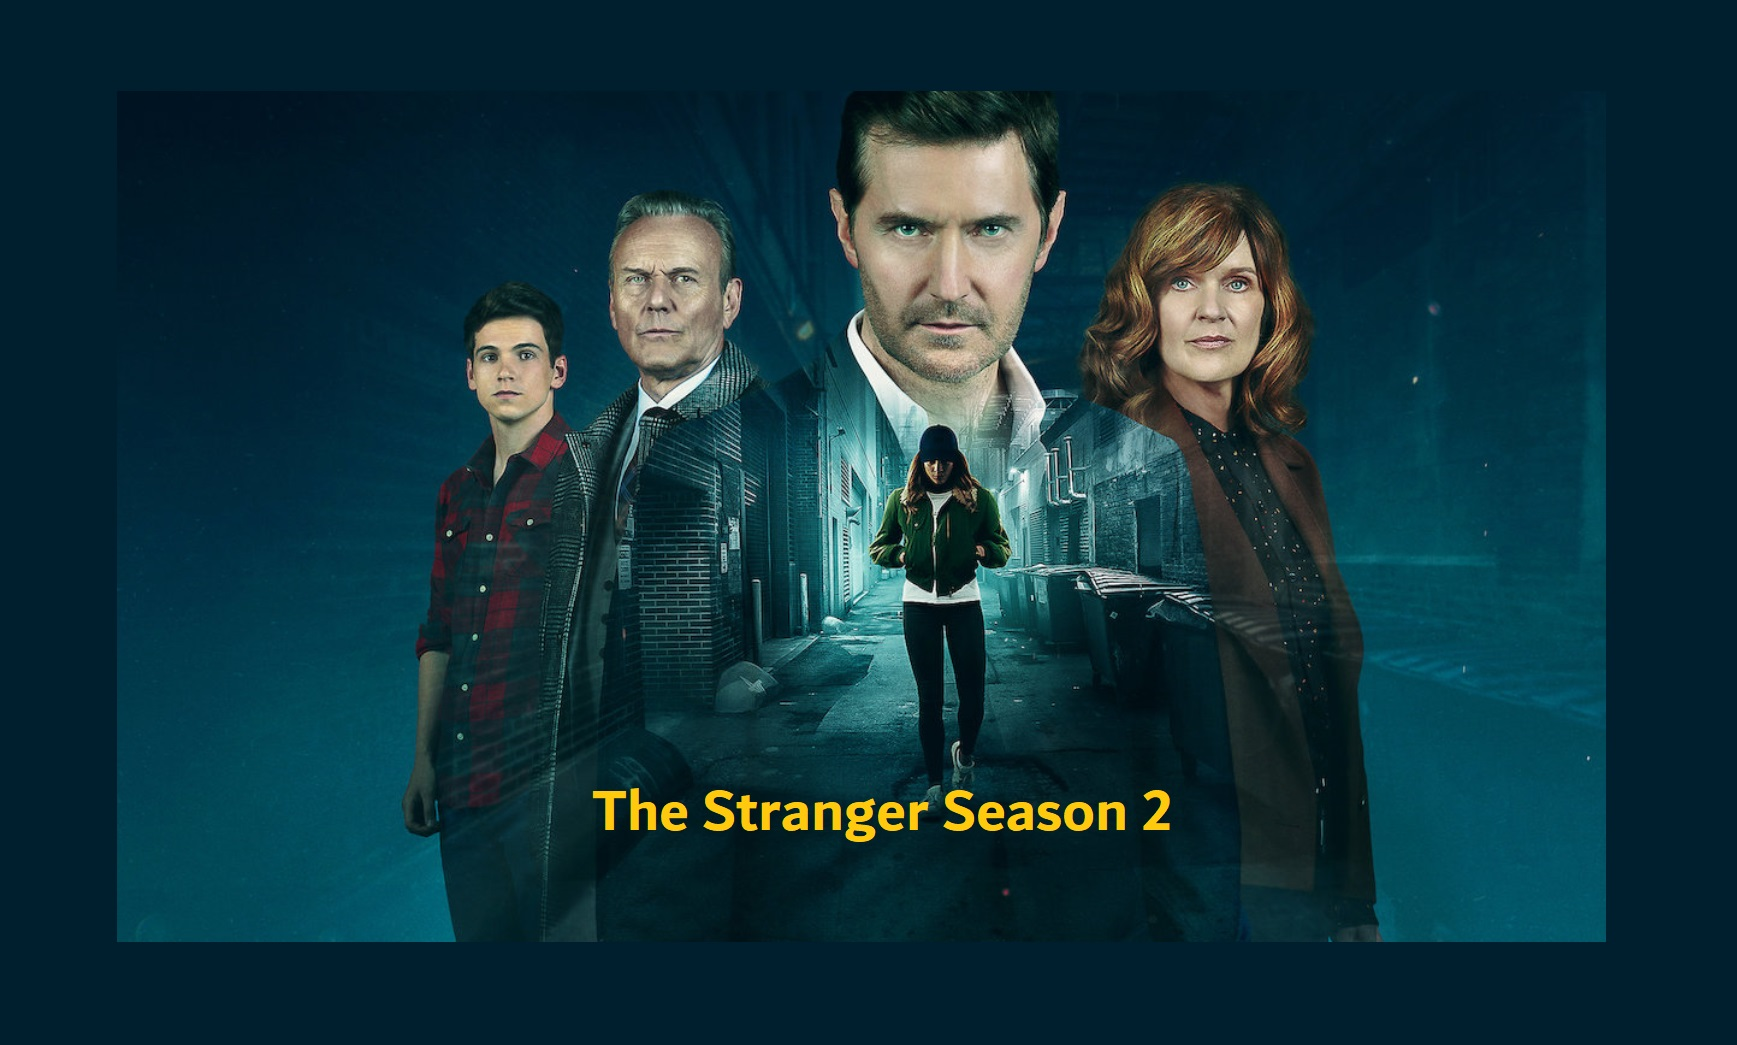 The Stranger Season 2